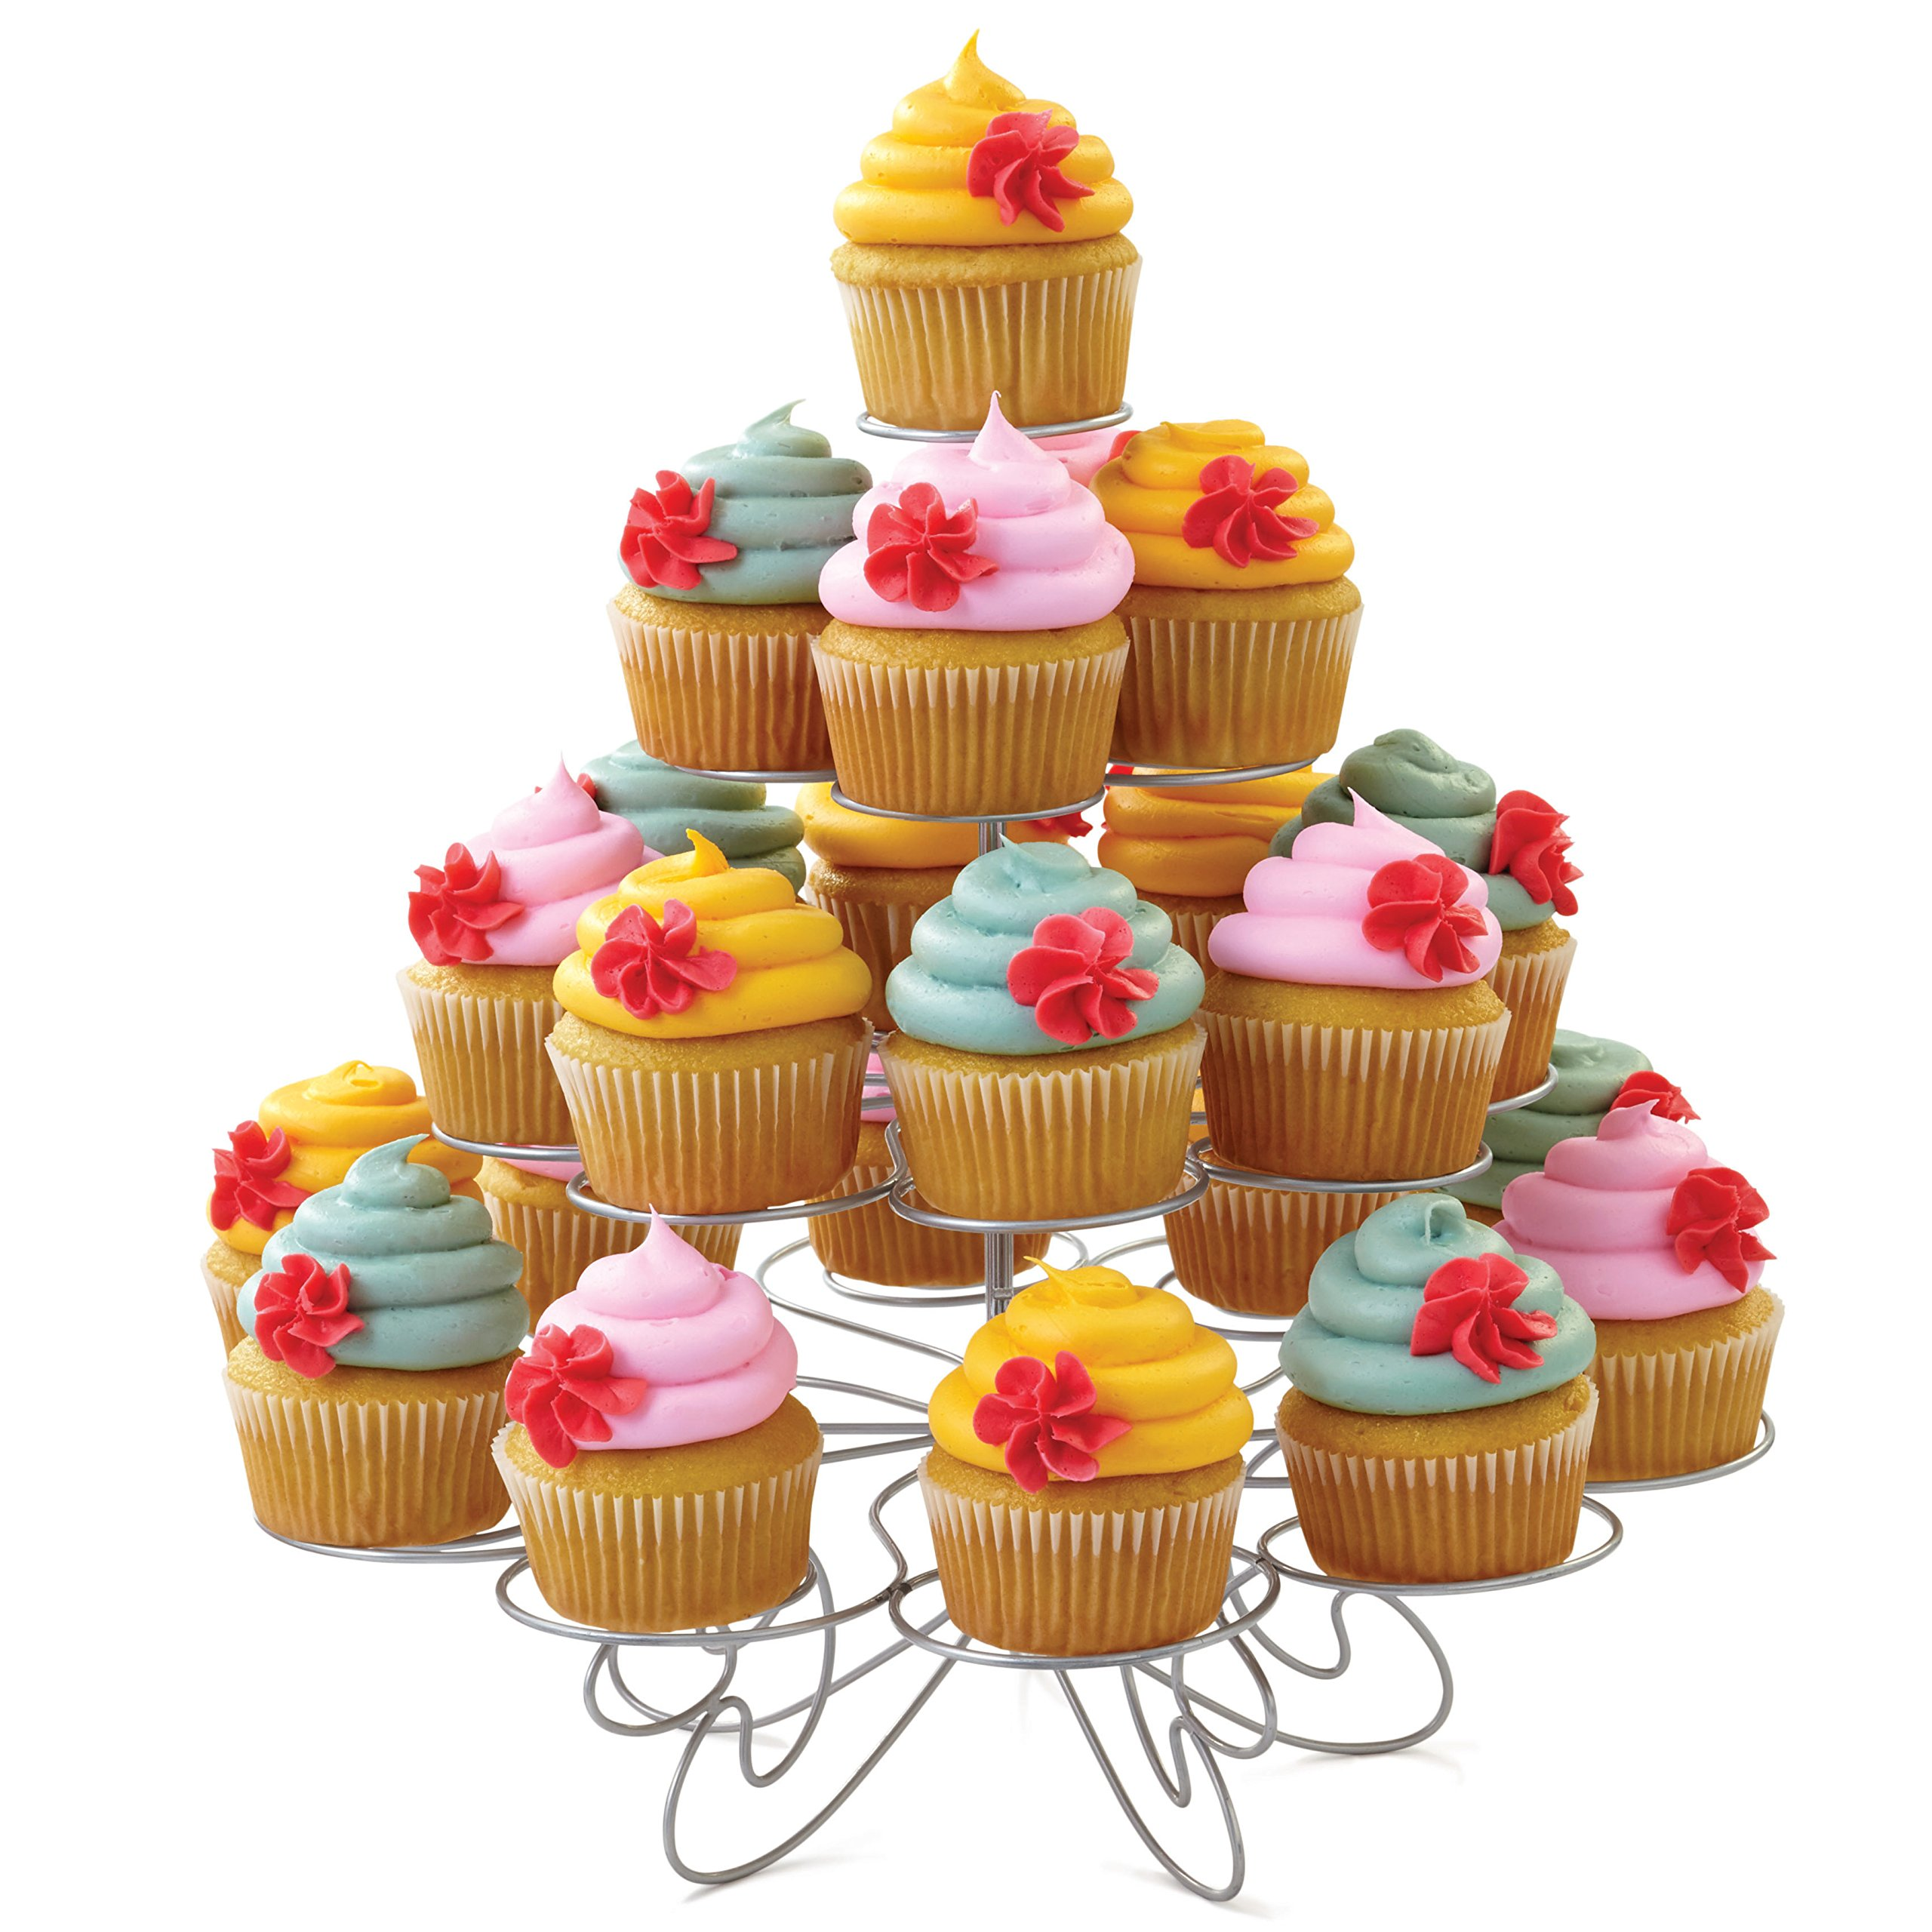 Wilton Cupcakes 'N More Cupcake Stand - Four Tier Dessert Stand